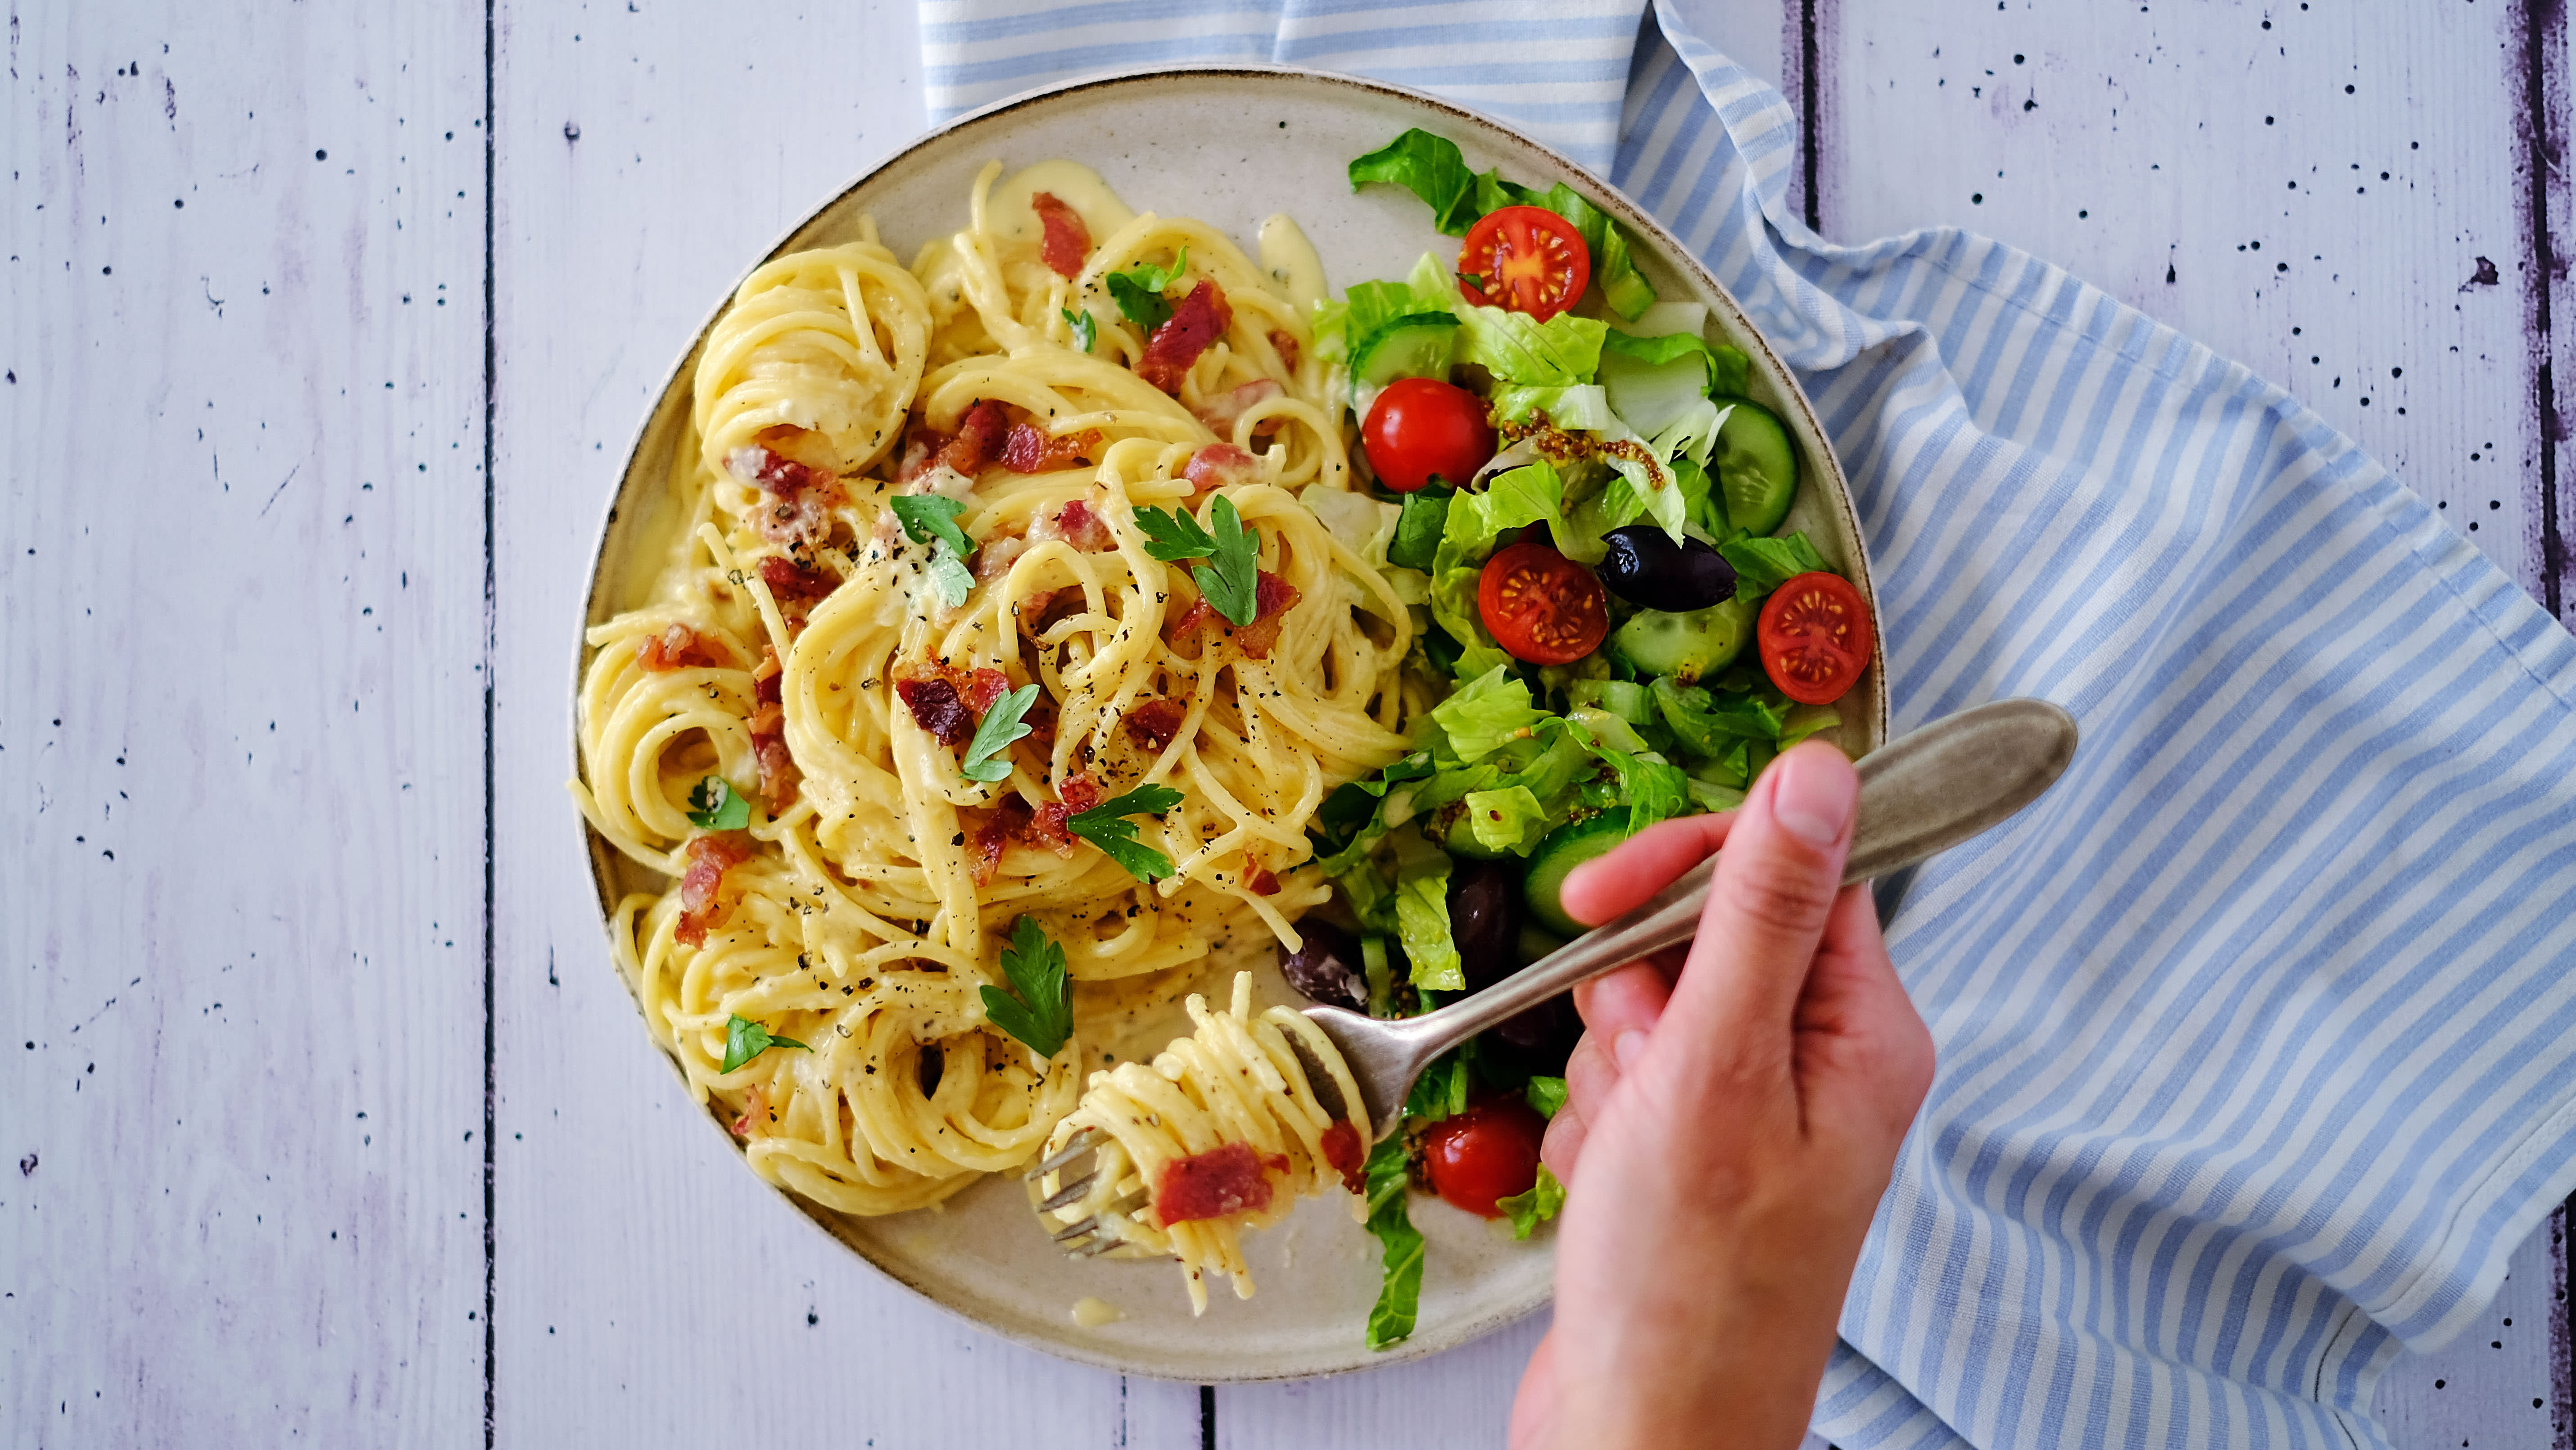 Spaghetti Carbonara with Beef Bacon and Salad